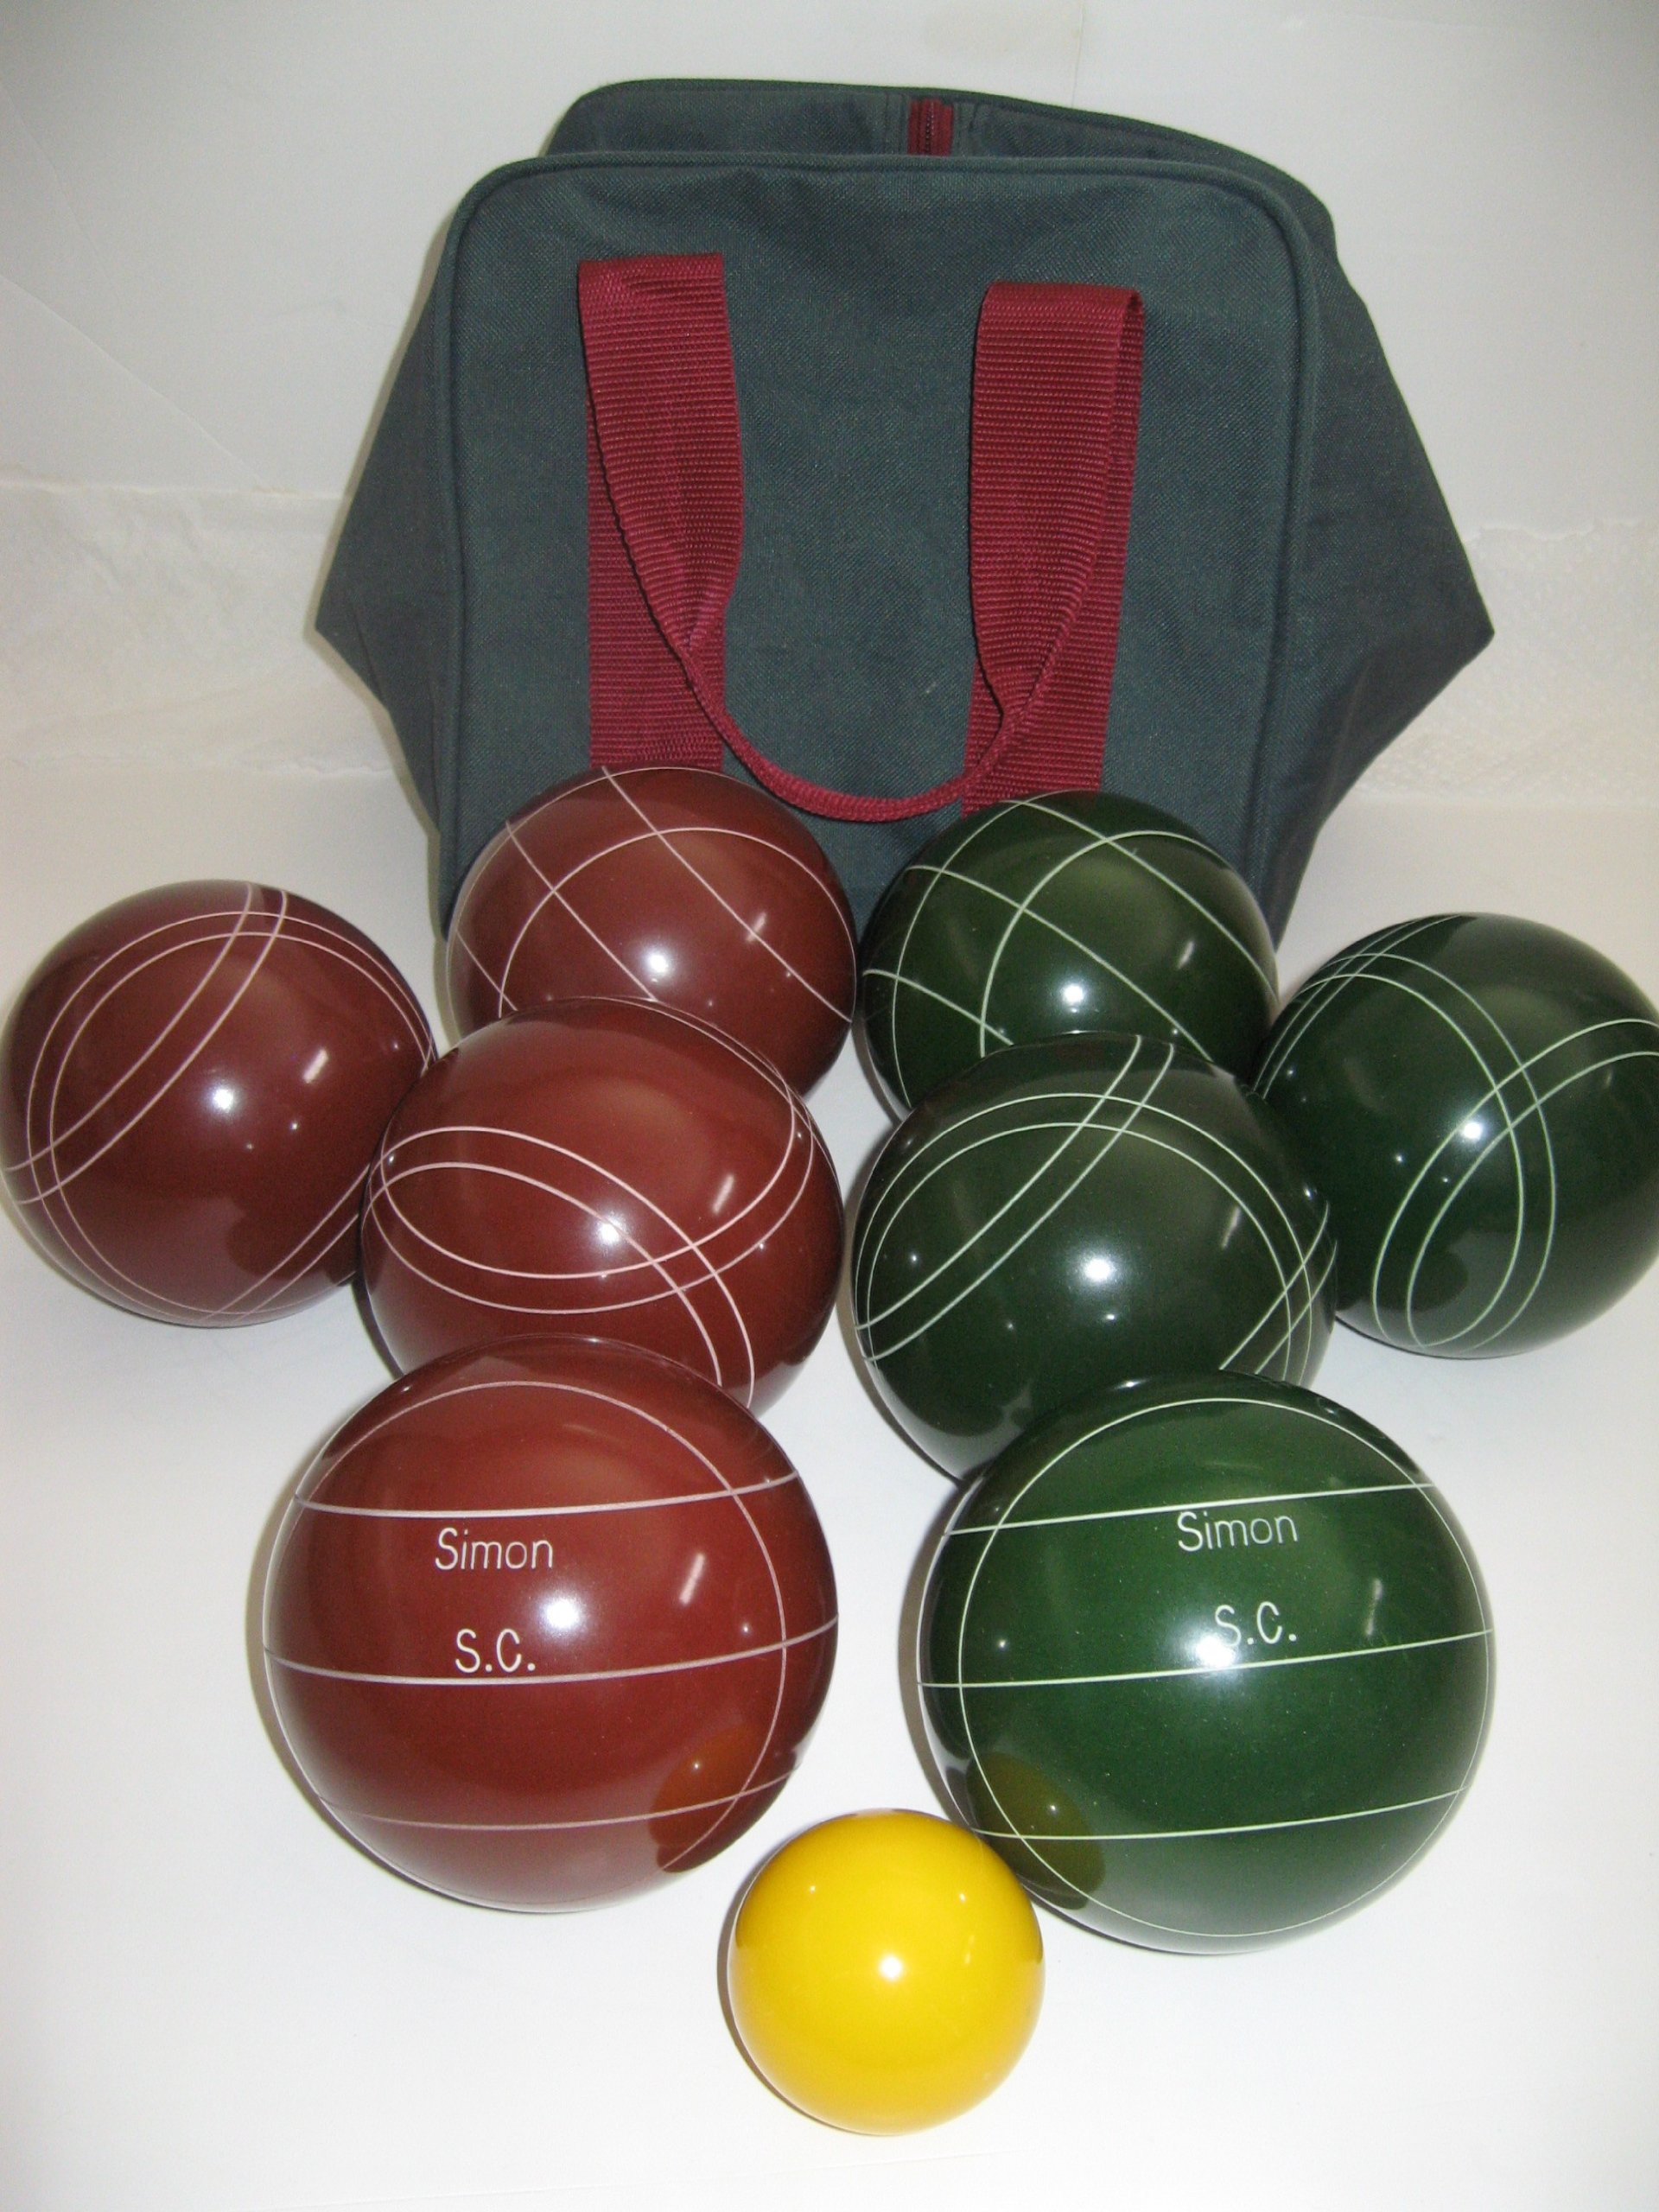 Epco Premium Quality Engraved Bocce package - 107mm Red and Green balls with engraving [Misc.] by Epco